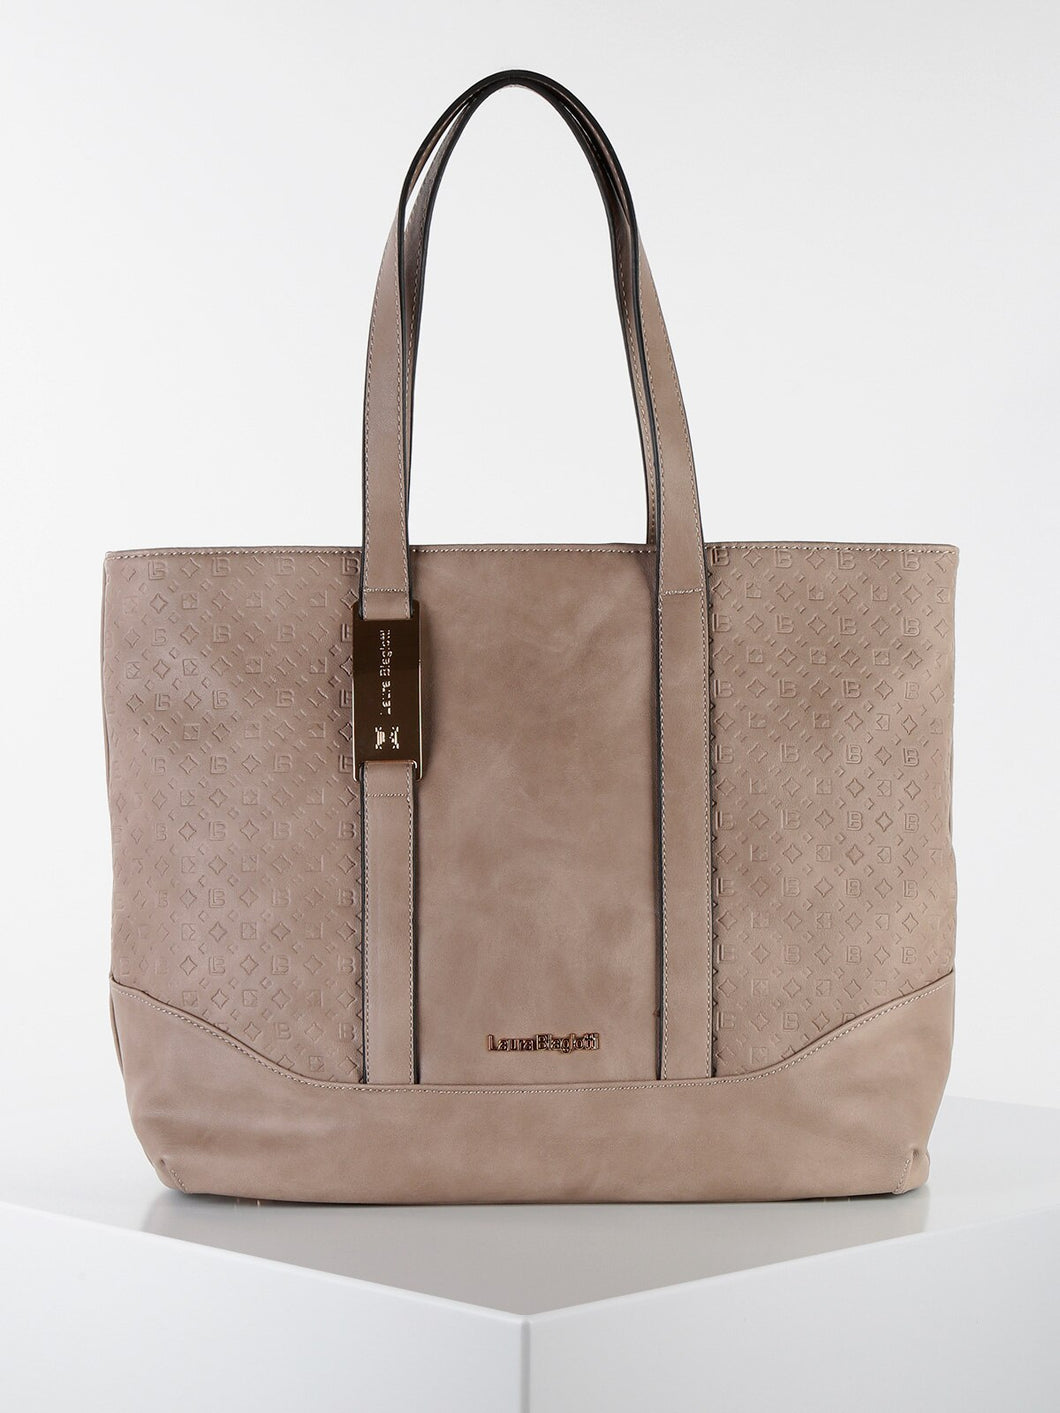 Borsa Donna Laura Biagiotti, Shopping Bag, Ecopelle